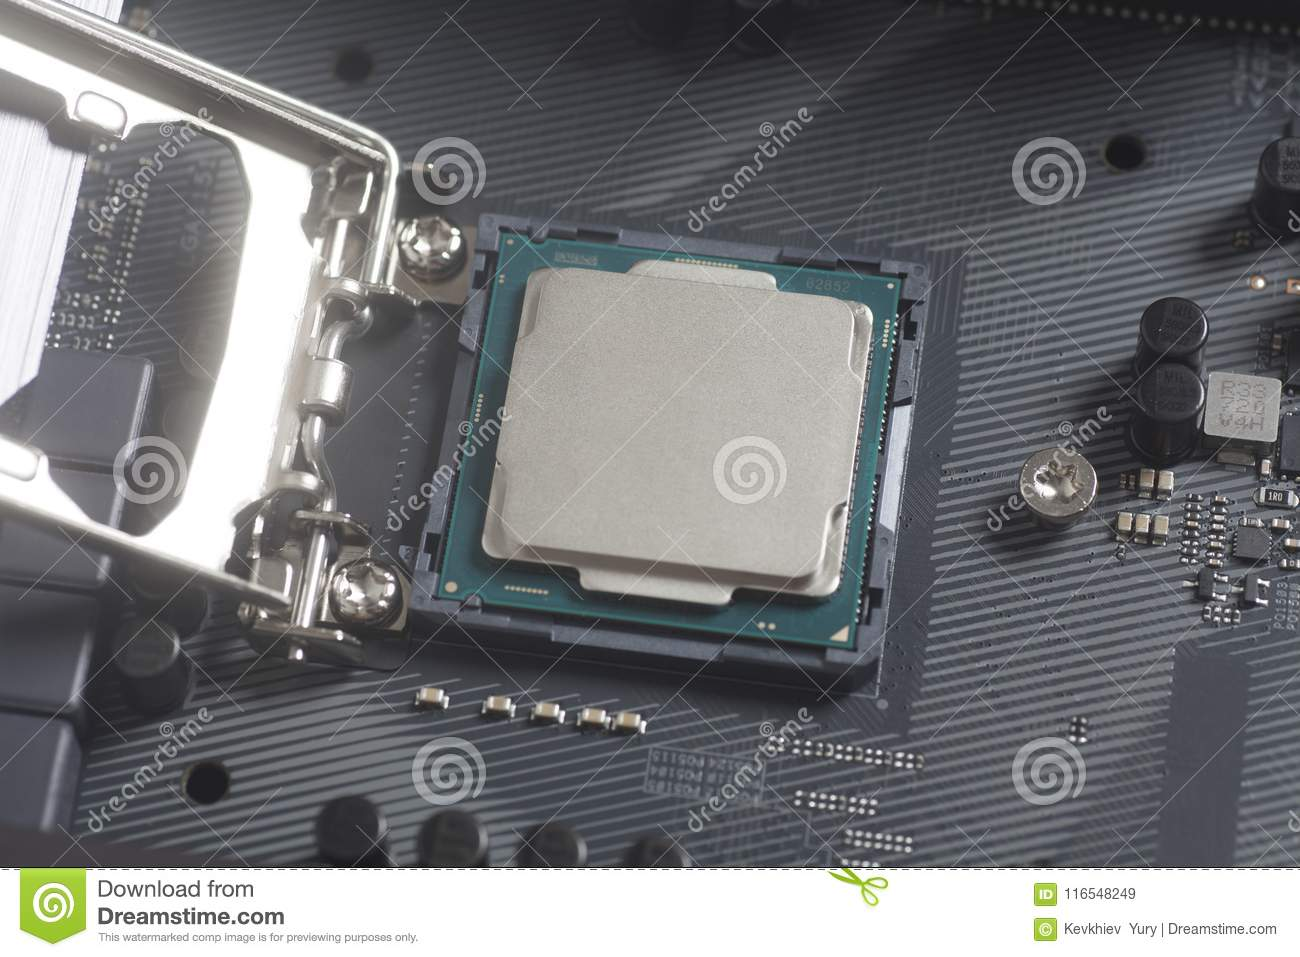 Intel LGA 1151 cpu socket on motherboard Computer PC with Processor